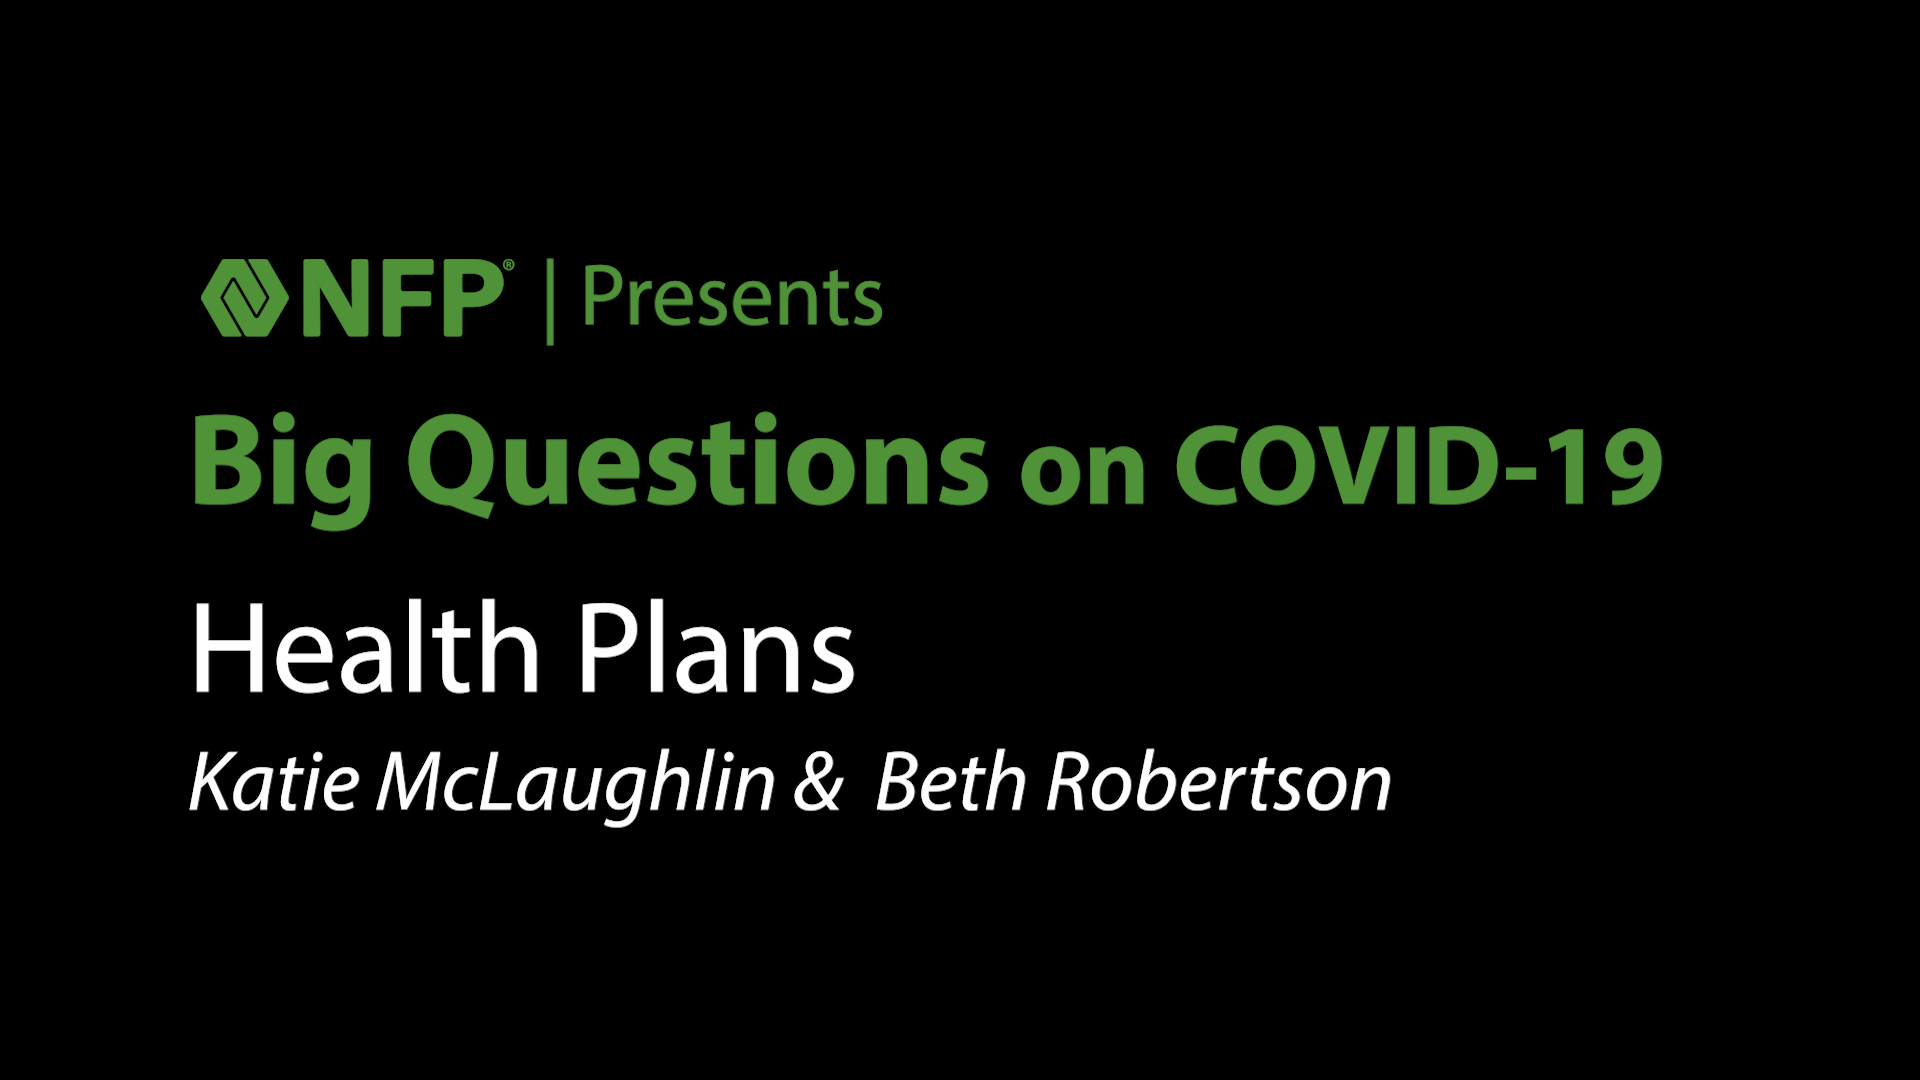 thumbnail image of Big Questions on COVID-19 - Health Plans with Katie McLaughlin and Beth Robertson